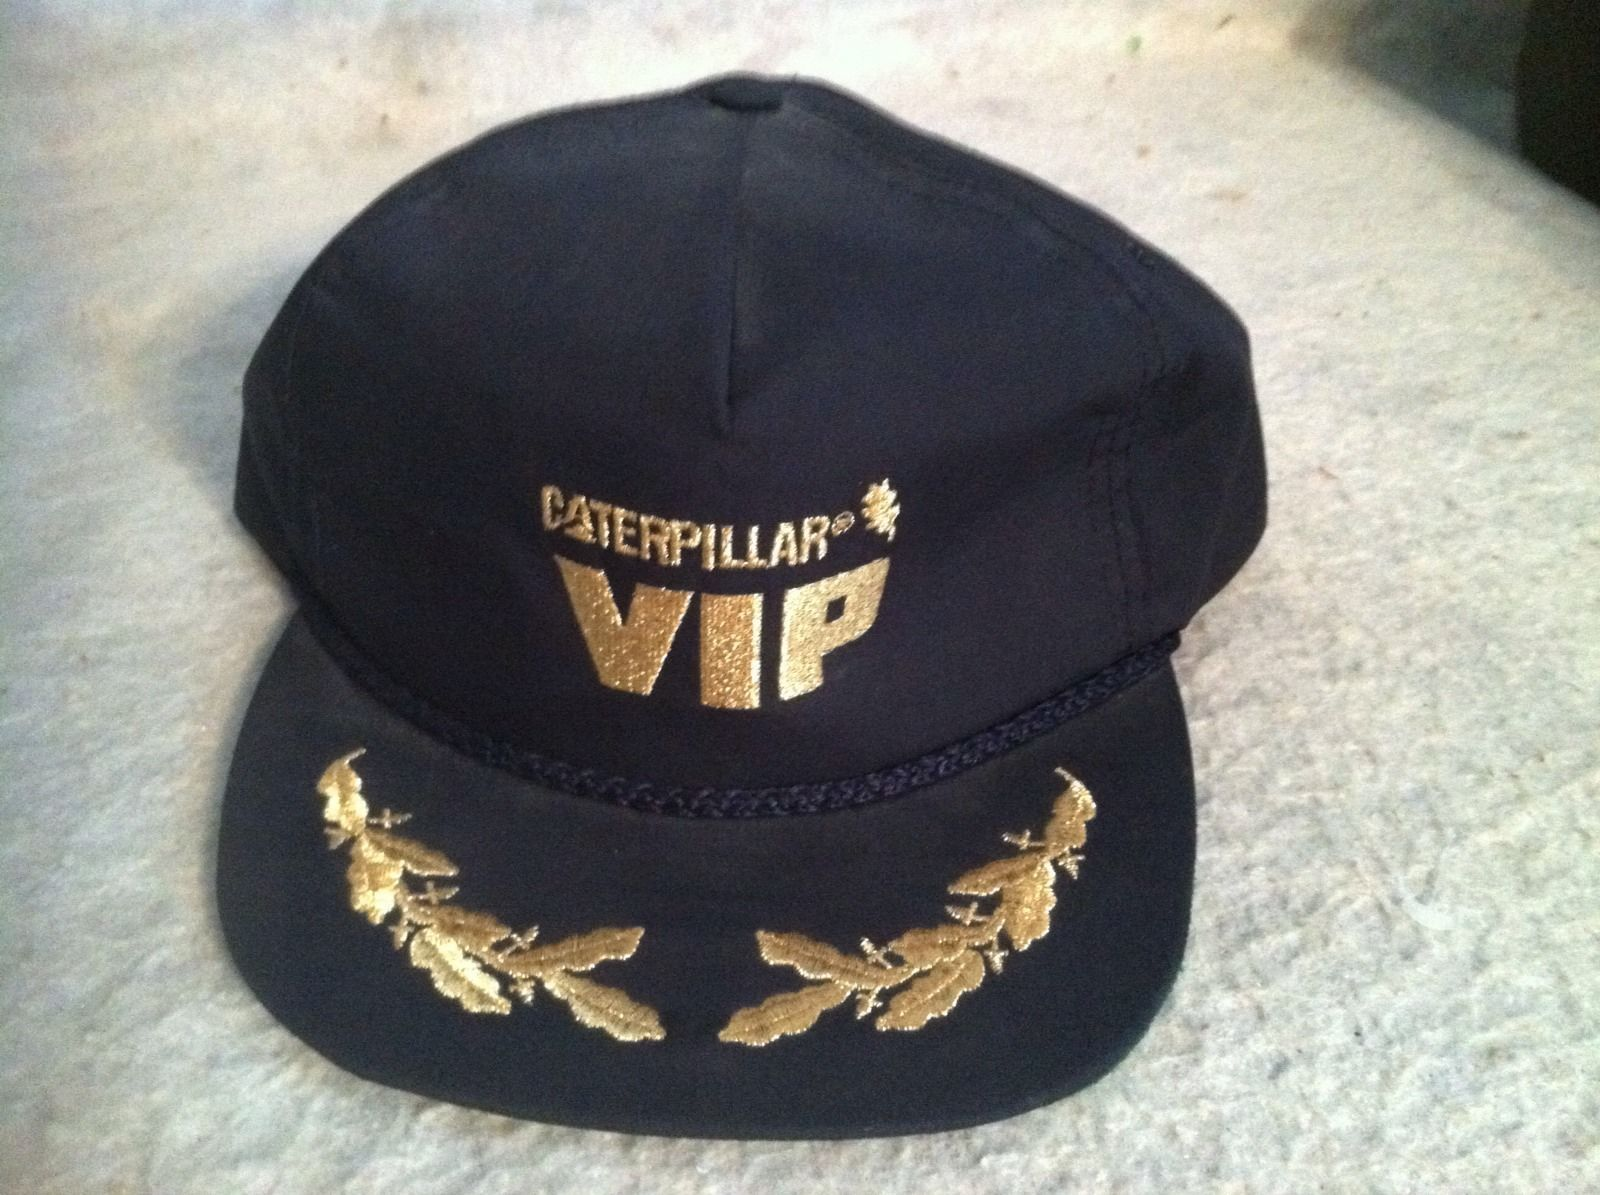 Primary image for Vintage Caterpillar VIP hat, Trucker Stitched Gold Lettering, Leafing Adjustable